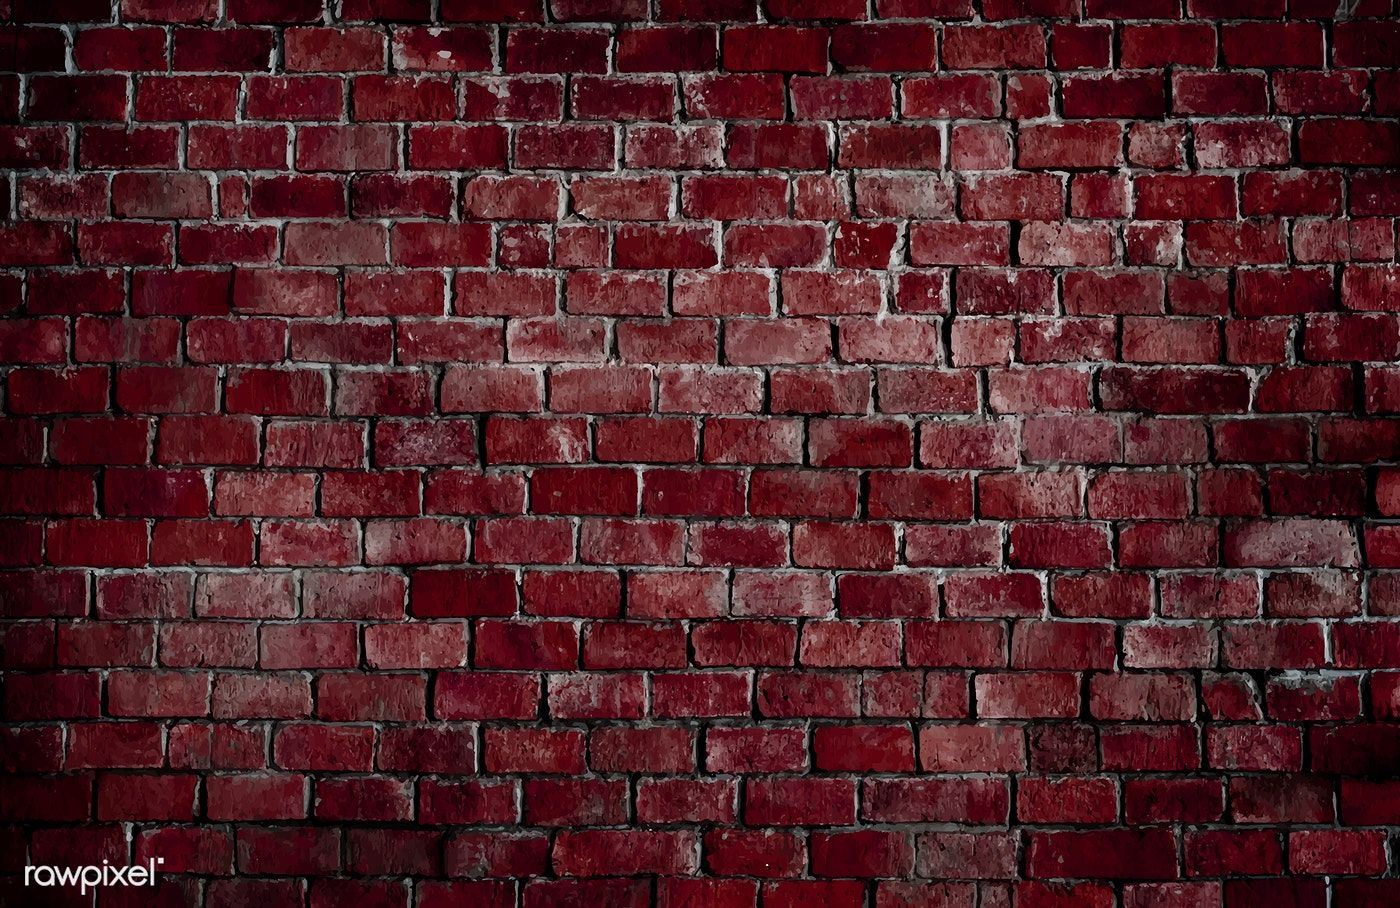 Red Textured Brick Wall Background Free Image By Rawpixel Com